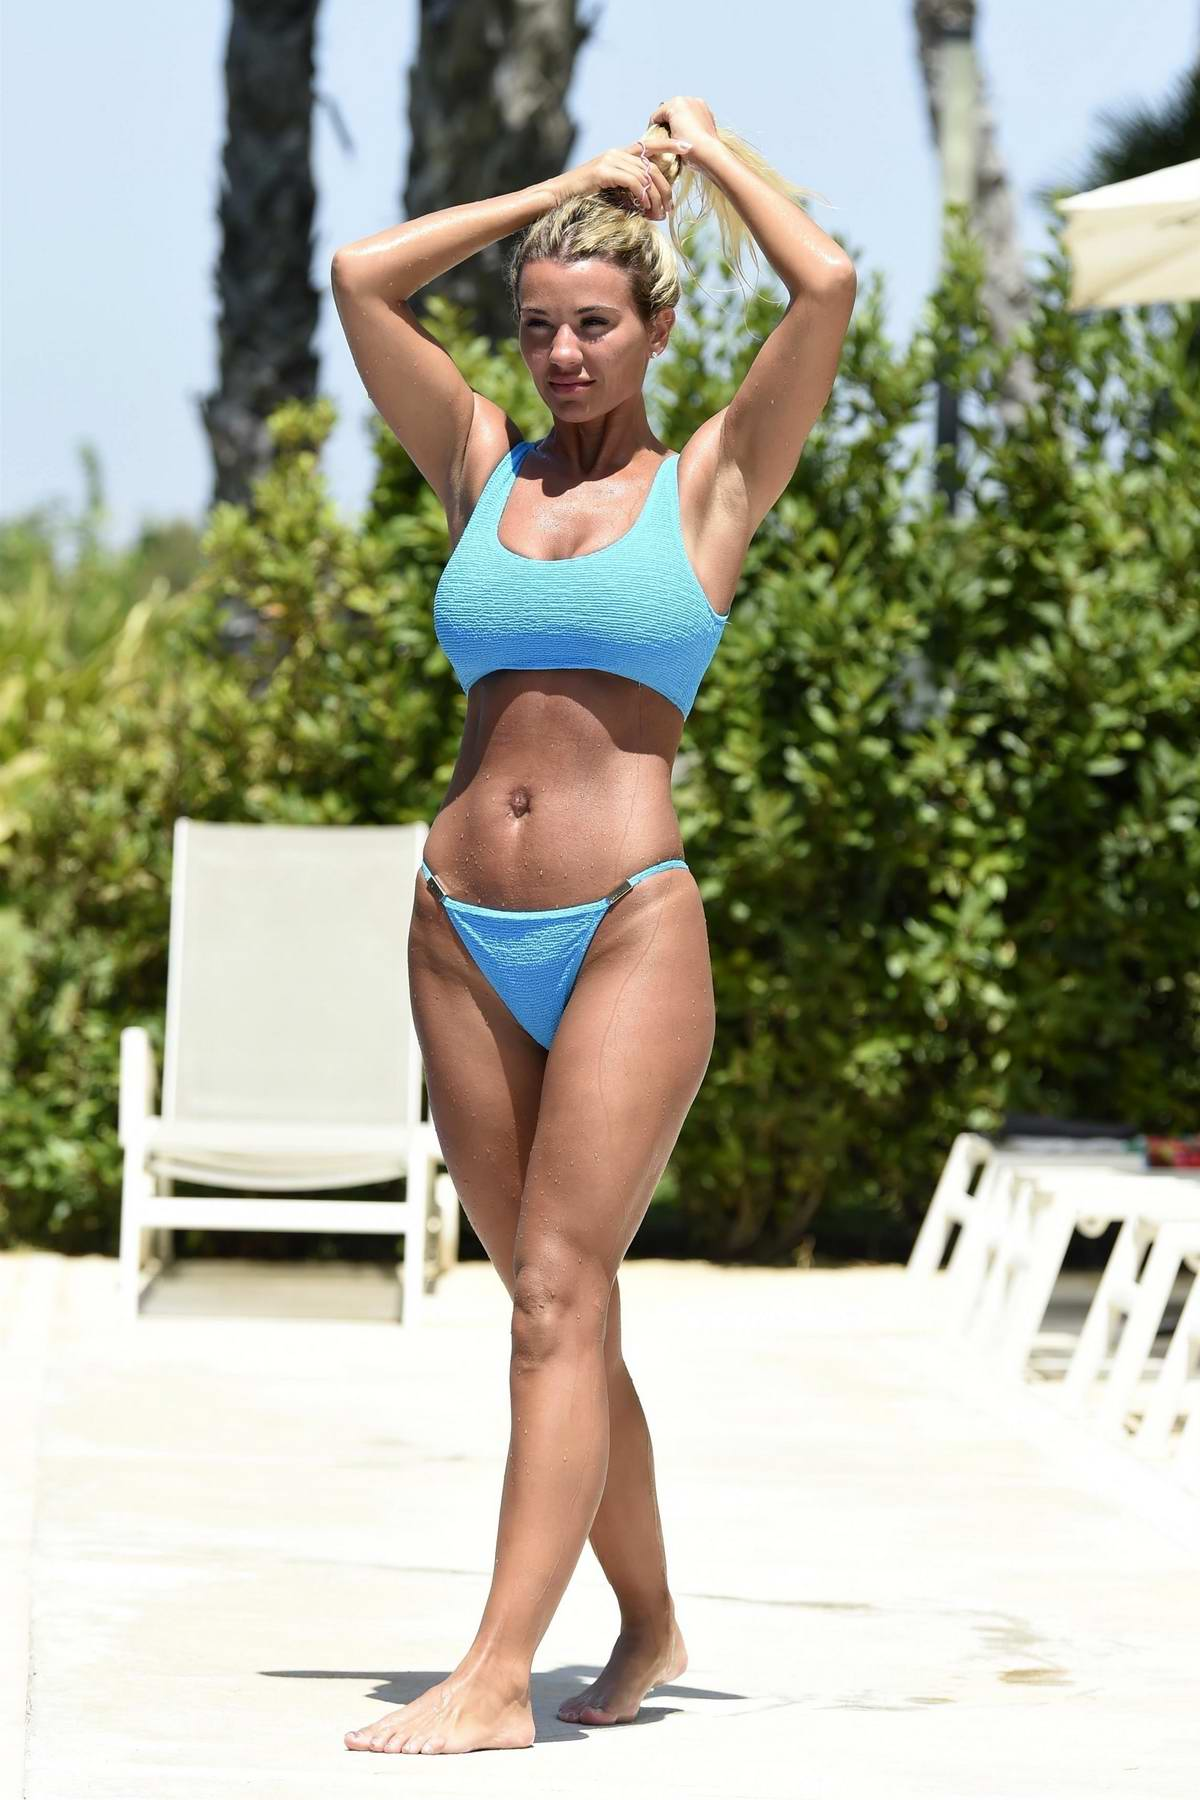 Christine McGuinness beats the heat in a blue bikini as she takes a dip in the pool while on holiday in Spain